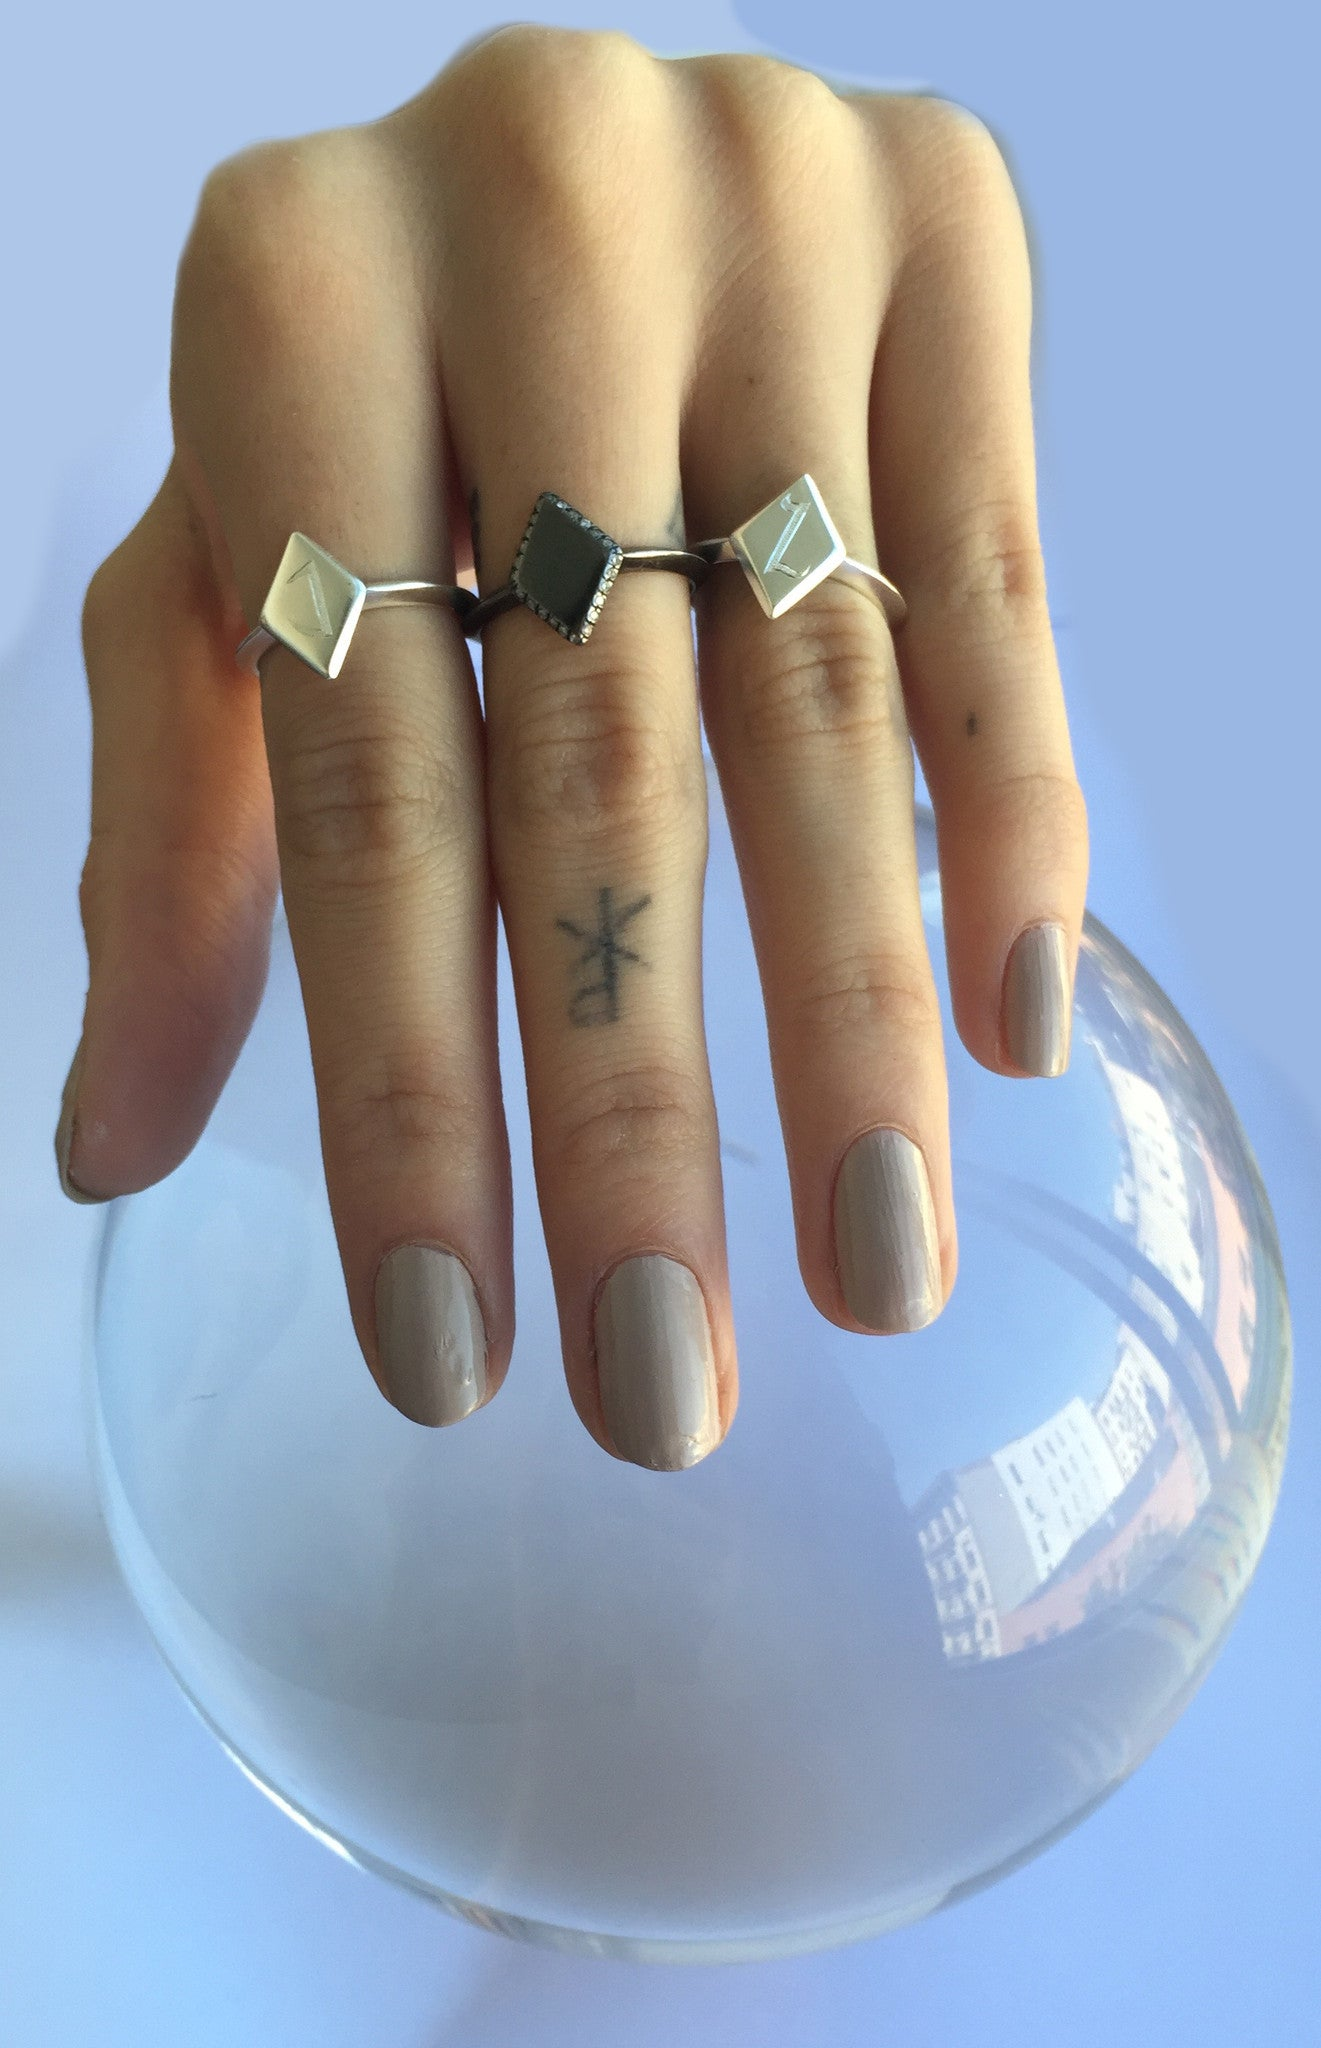 Engraved Initial Monogram Diamond Kite Shape Ring Wendy Nichol Fine Jewelry Designer Handmade in NYC